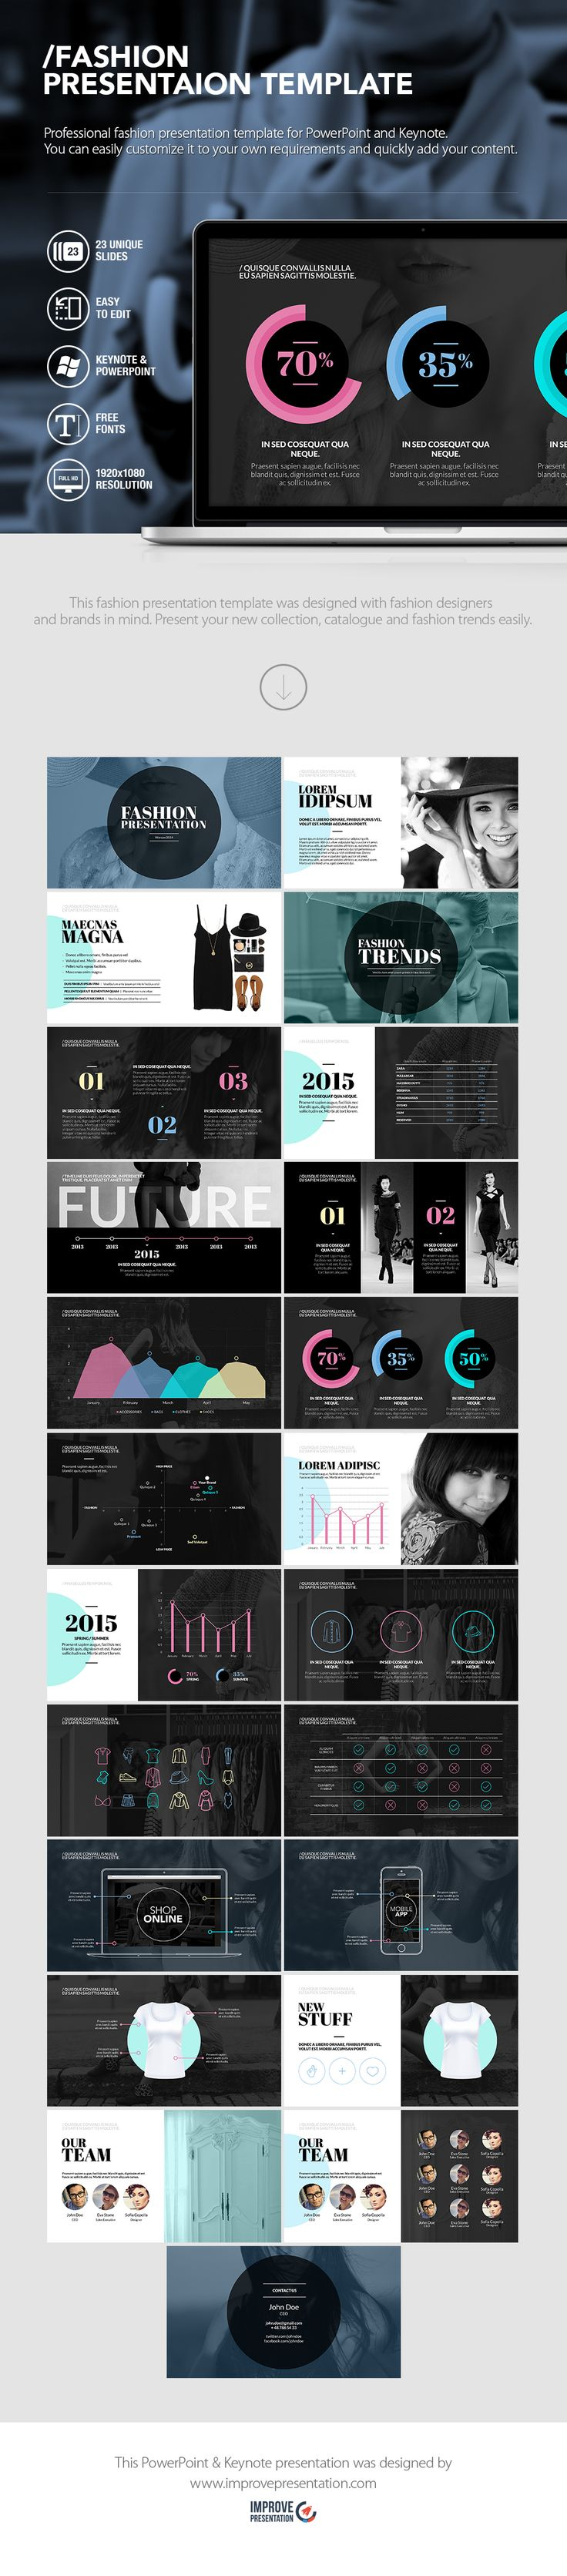 This fashion presentation template was designed with fashion designers and brands in mind. Present your new collection, catalogue and fashion trends easily.  LINK -> https://www.improvepresentation.com/presentation-templates/fashion-presentation-template  #fashion #designers #showroom #catalouge